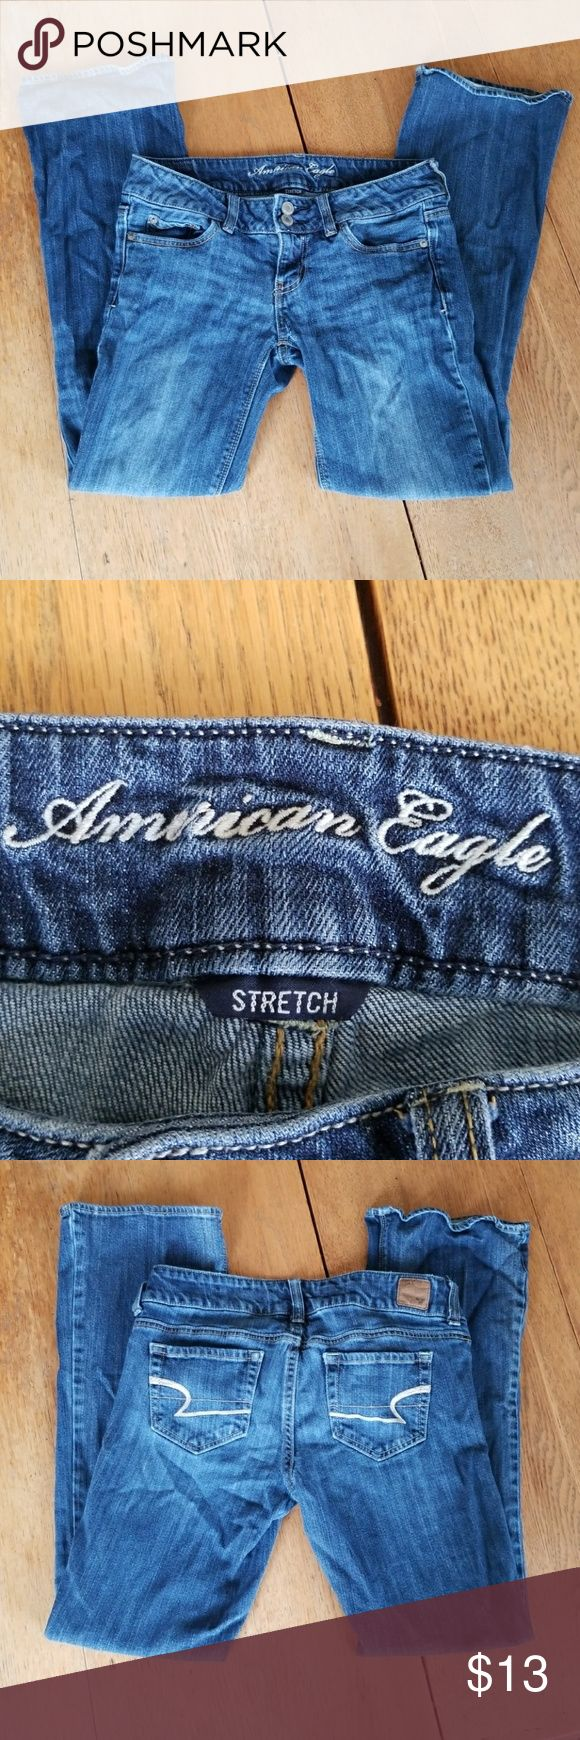 American Eagle Jeans These are older model American Eagle jeans that are still in good condition to wear, that are a dark blue and are the short length and a size 4. American Eagle Outfitters Jeans Boot Cut